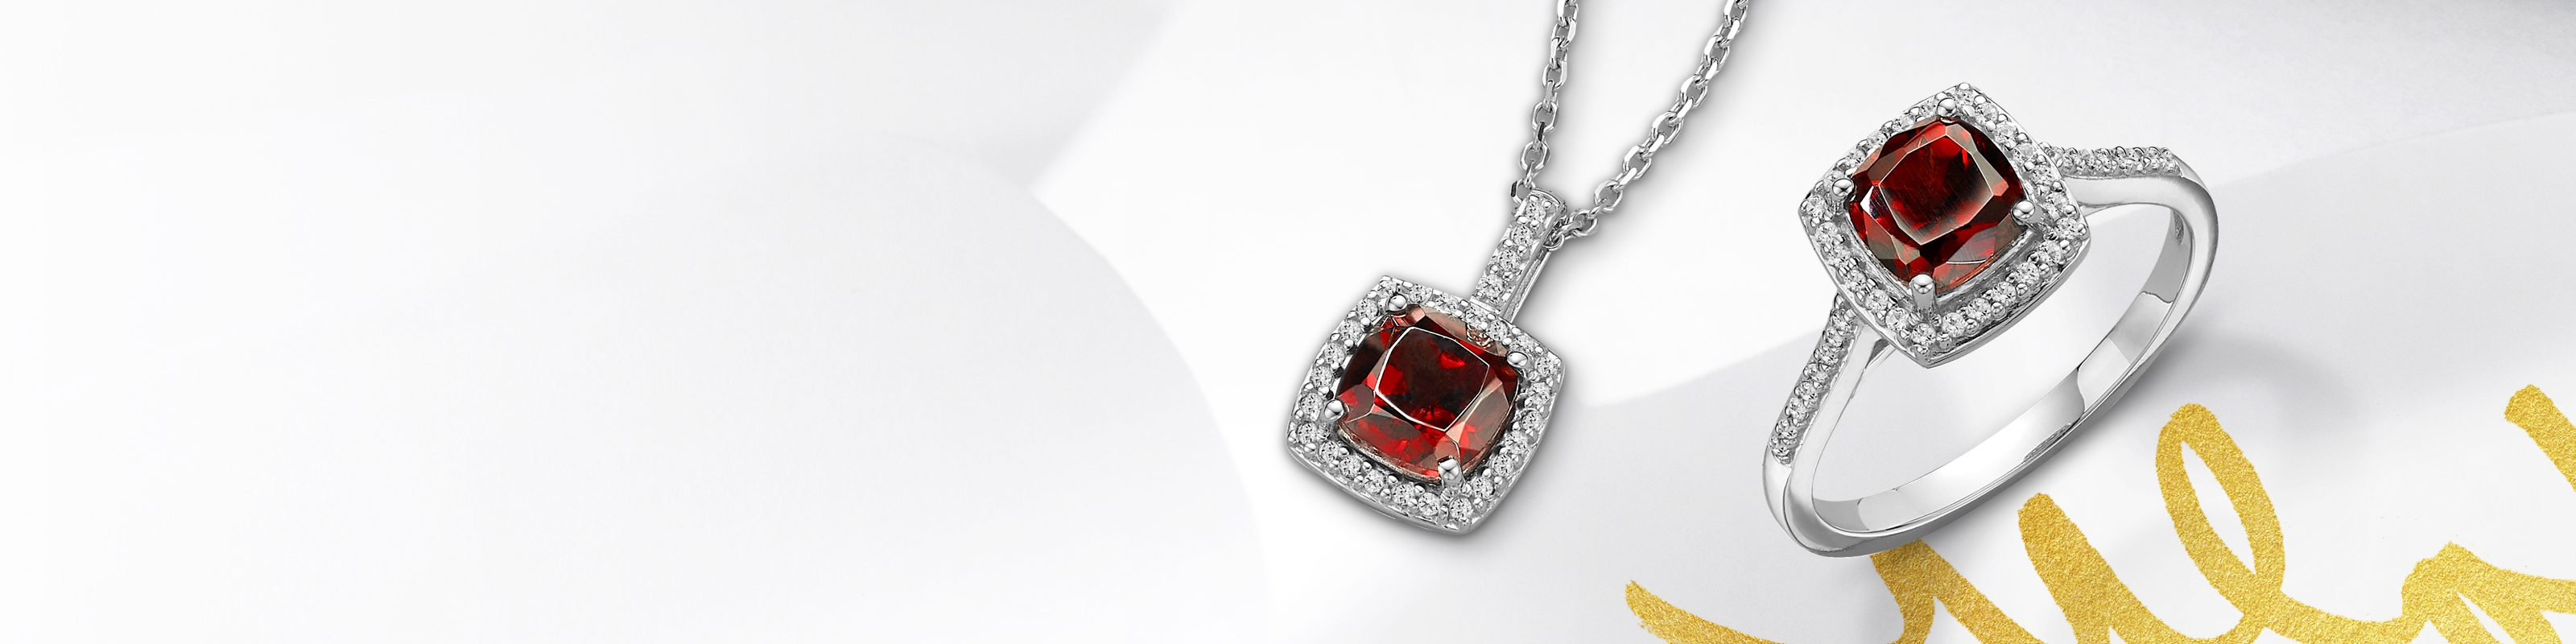 Garnet ring and necklace set in white gold. Shop all garnet jewelry at Jared.